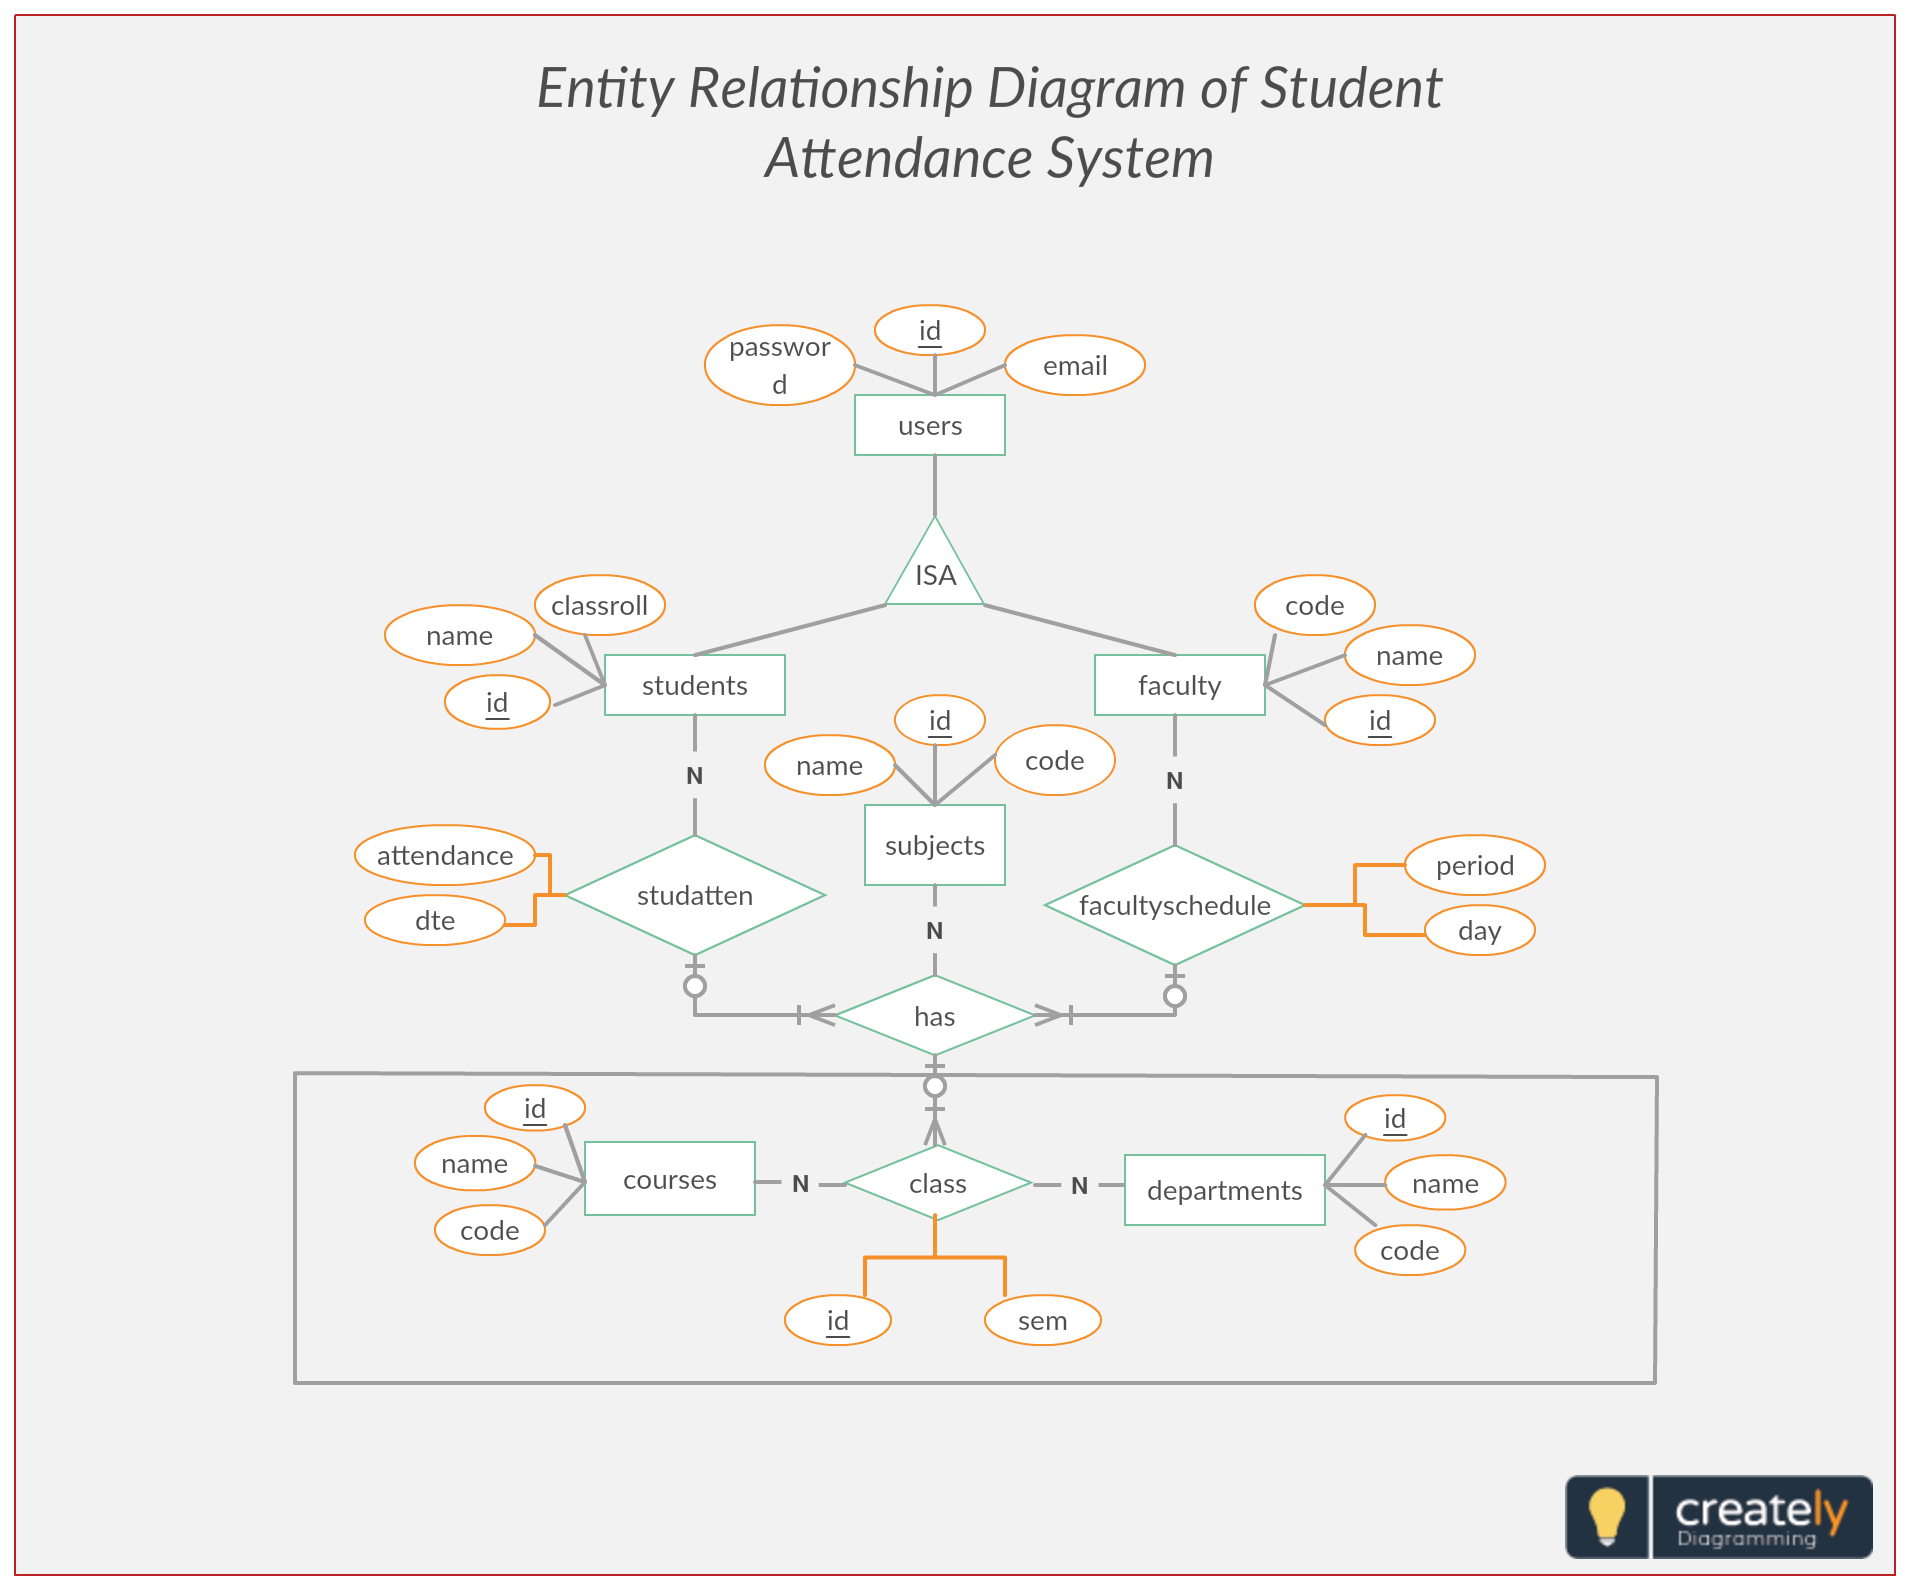 medium resolution of entity relationship diagram represents the relationship between entities in a table click on the image to edit online and download as image files erd er